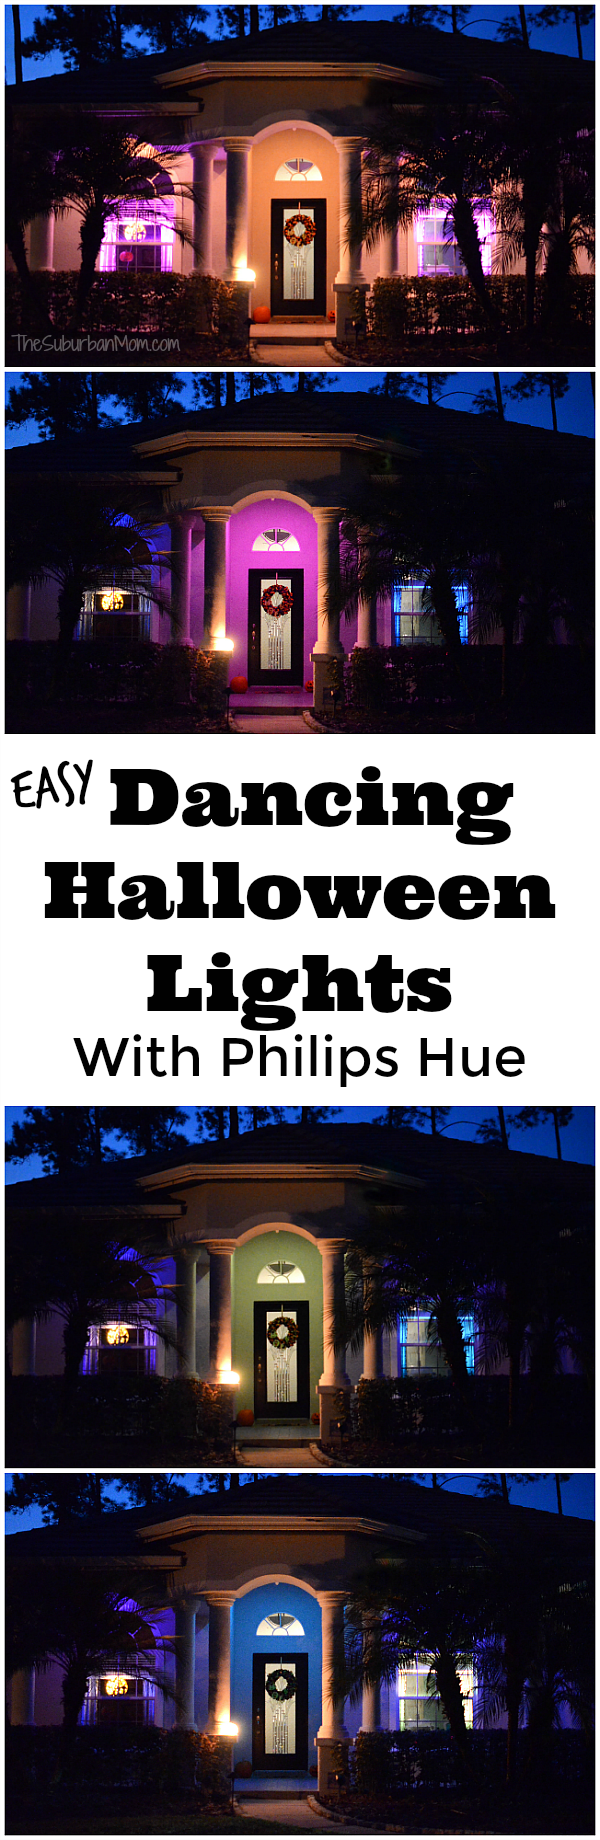 Dancing Halloween Lights